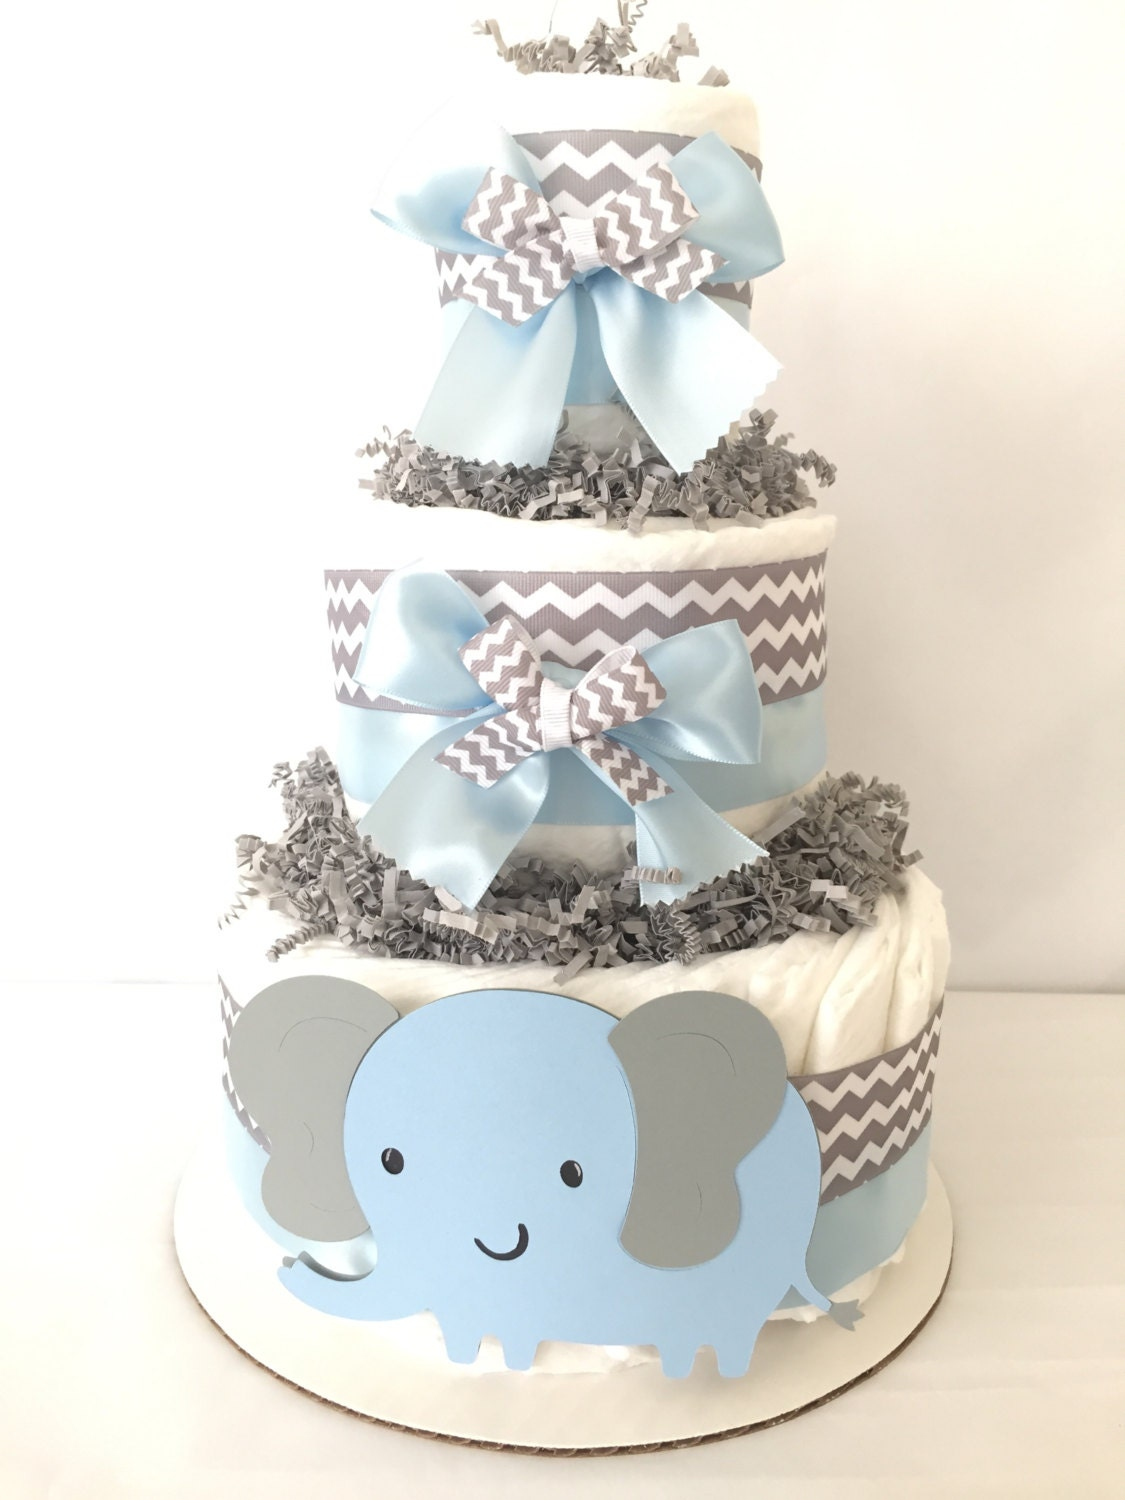 Baby Shower Cakes Unique ~ Elephant diaper cake baby shower cakes